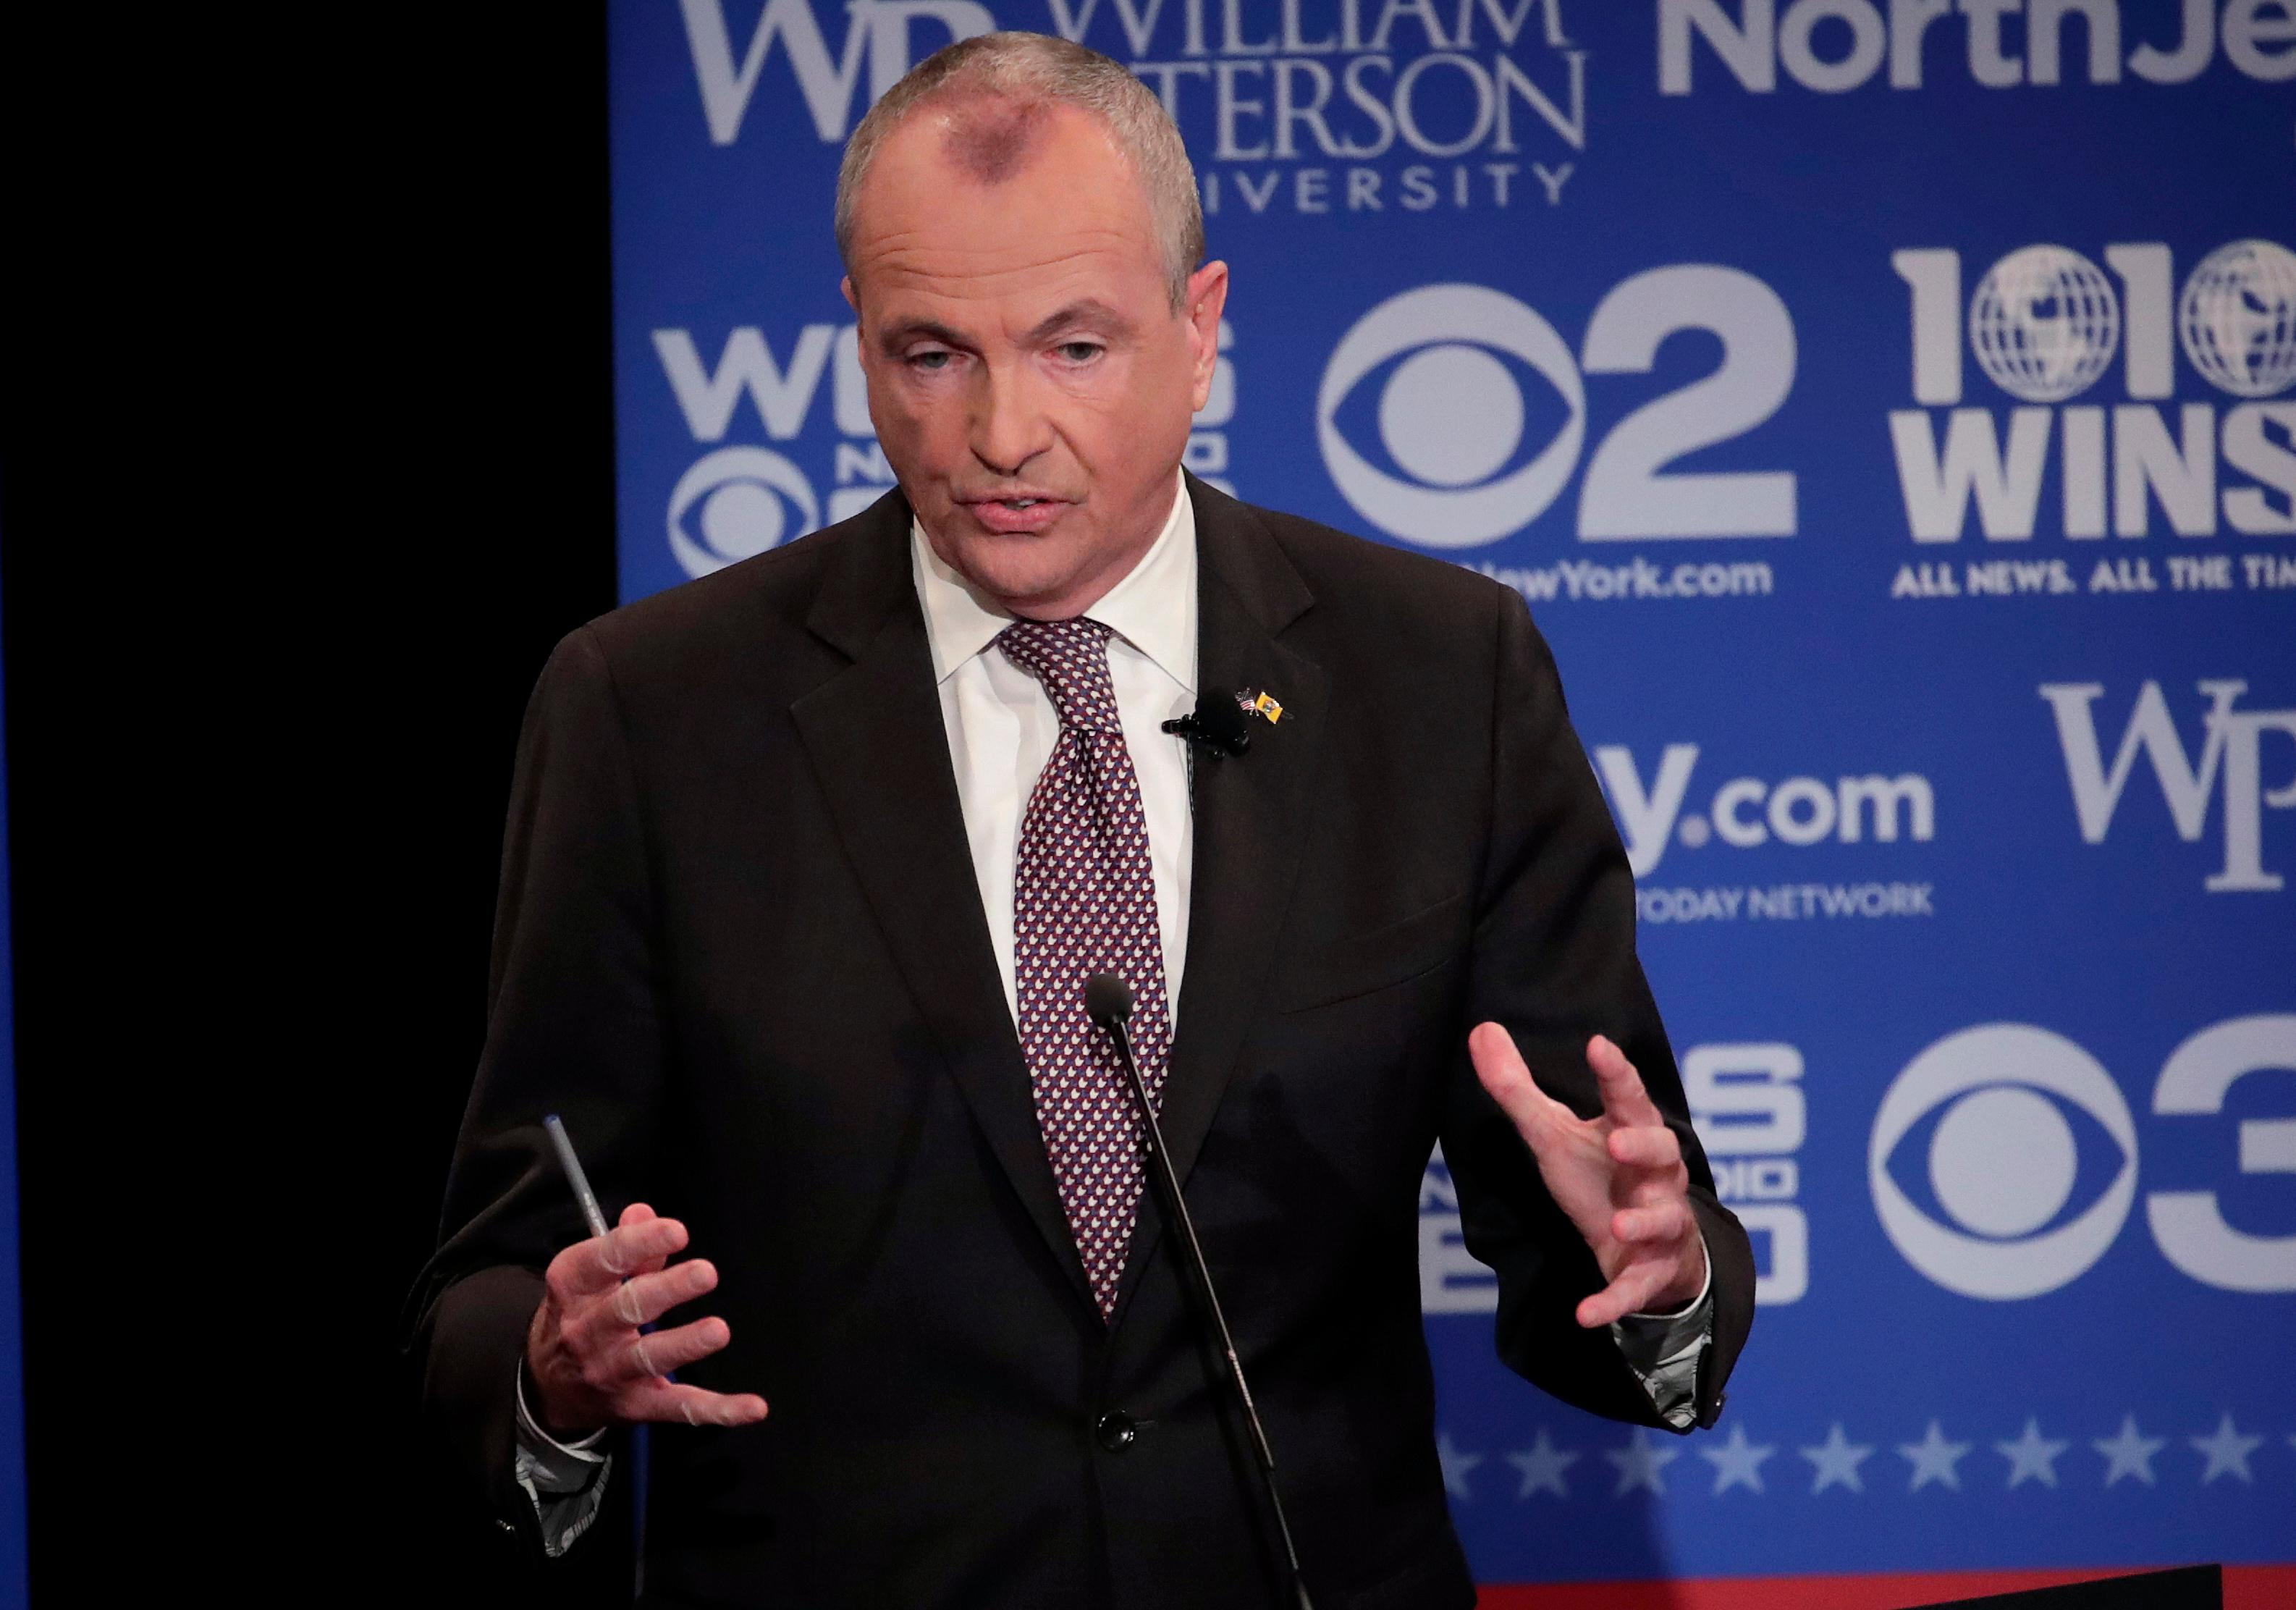 FILE - In this Oct. 18, 2017, file photo, Democratic nominee Phil Murphy participates in a gubernatorial debate against Republican nominee Lt. Gov. Kim Guadagno at William Paterson University, in Wayne, N.J. Voters in Virginia and New Jersey are picking new governors in contests that could be an early referendum on President Donald Trump. The two gubernatorial elections on Tuesday, Nov. 7, pit two mild-mannered Democrats against two Republicans who have kept the president at arm's length. (AP Photo/Julio Cortez, Pool, File)